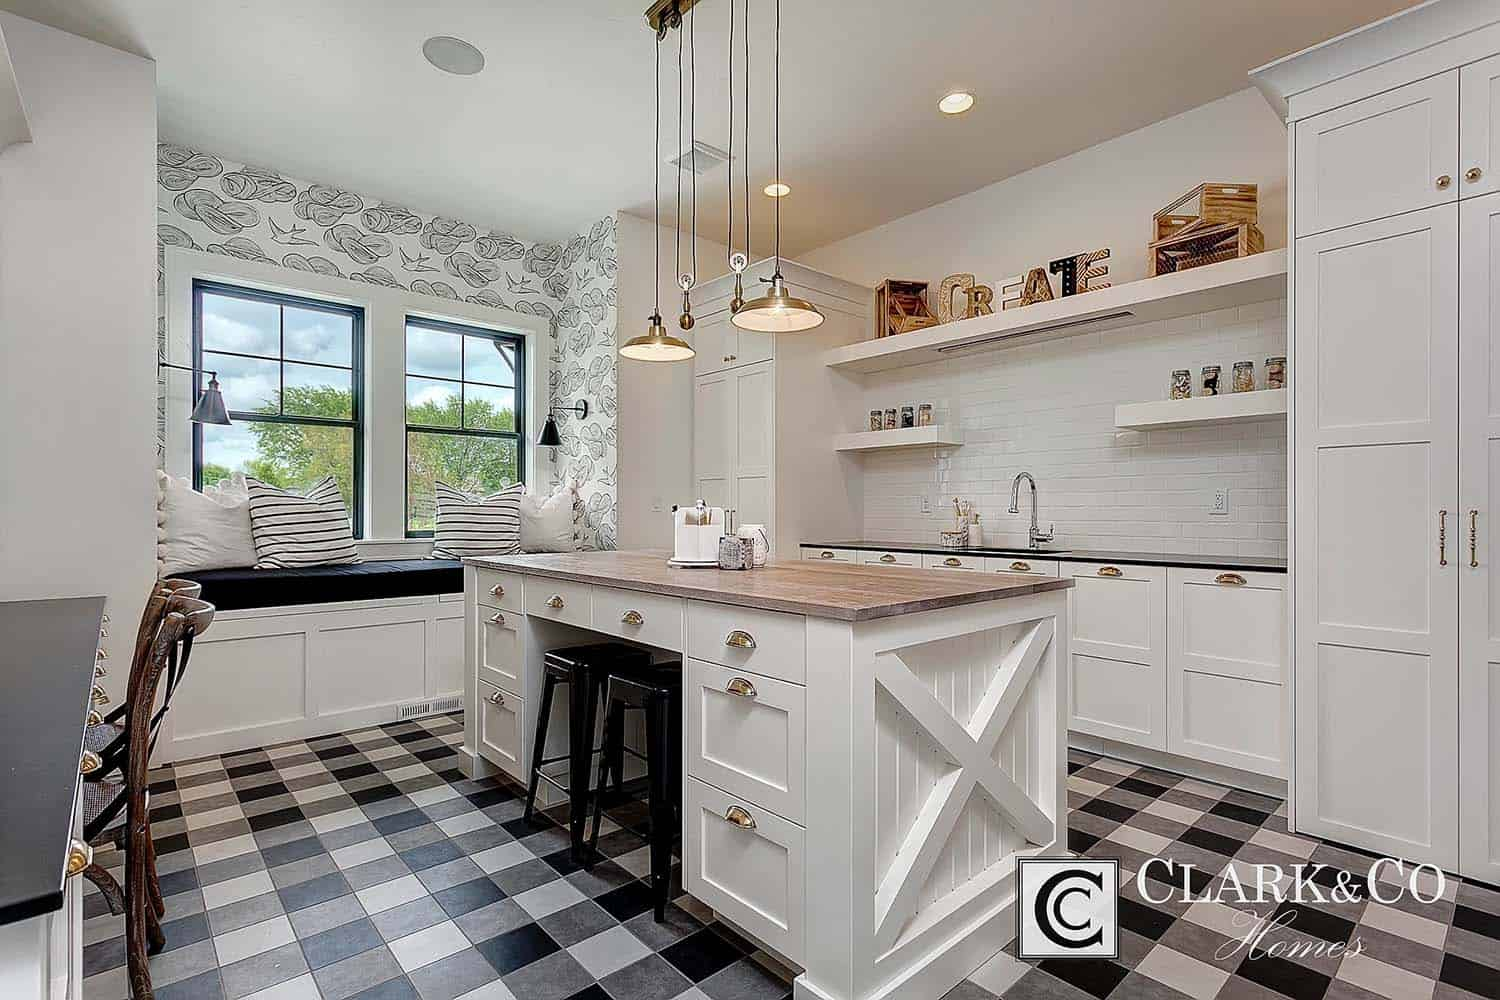 Modern Farmhouse Style-Clark and Co Homes-10-1 Kindesign